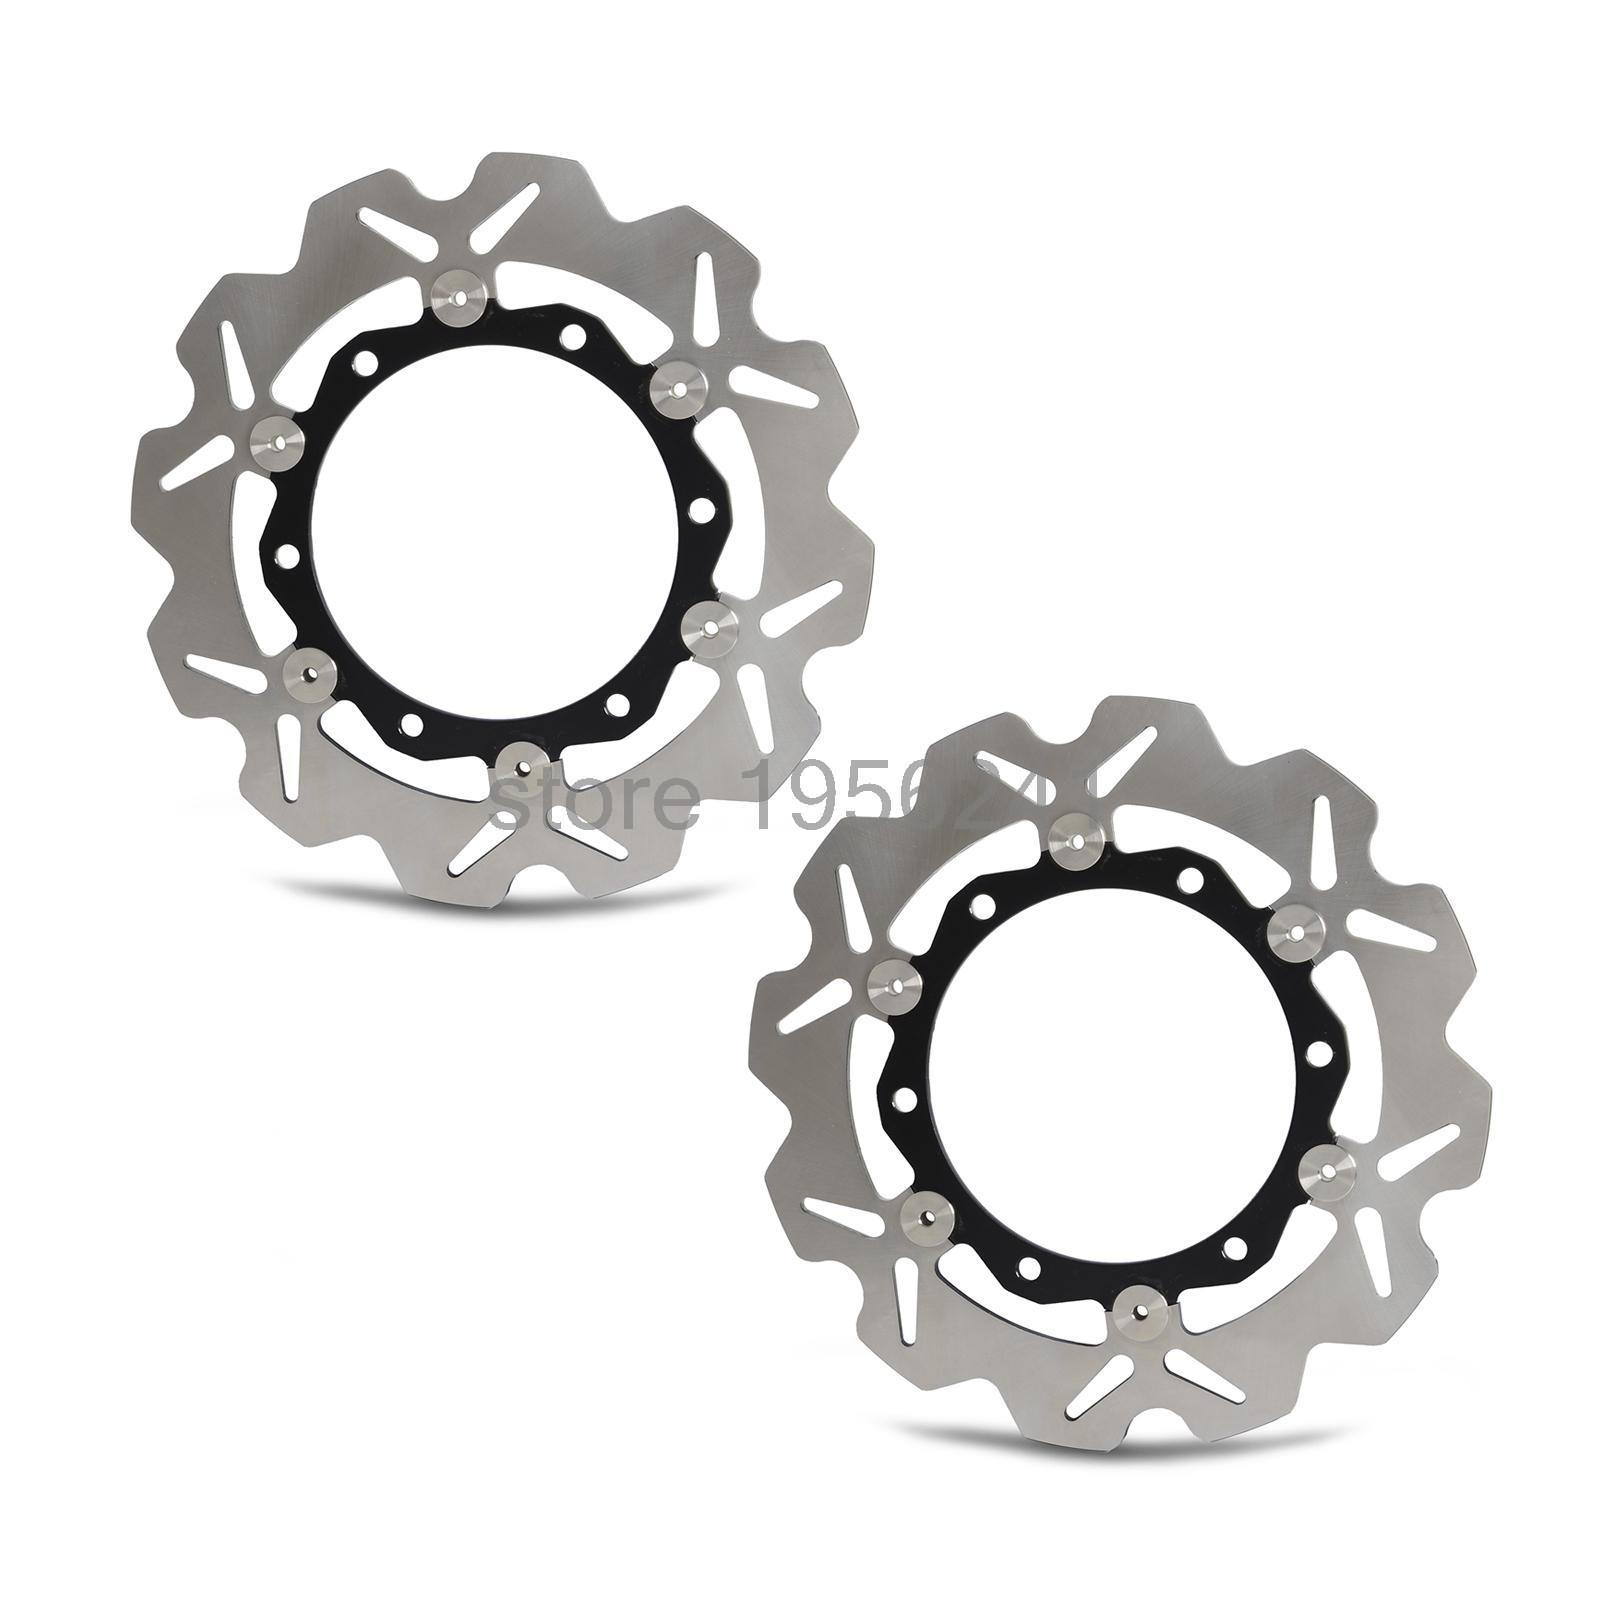 New Motorcycle Front  Rotor Brake Disc For Kawasaki ZX-6 ZX-6R ZX6R ZX-12R ZX12R Ninja ZX600 ZX1200 ZR550 Zephyr ZXR400 NEW